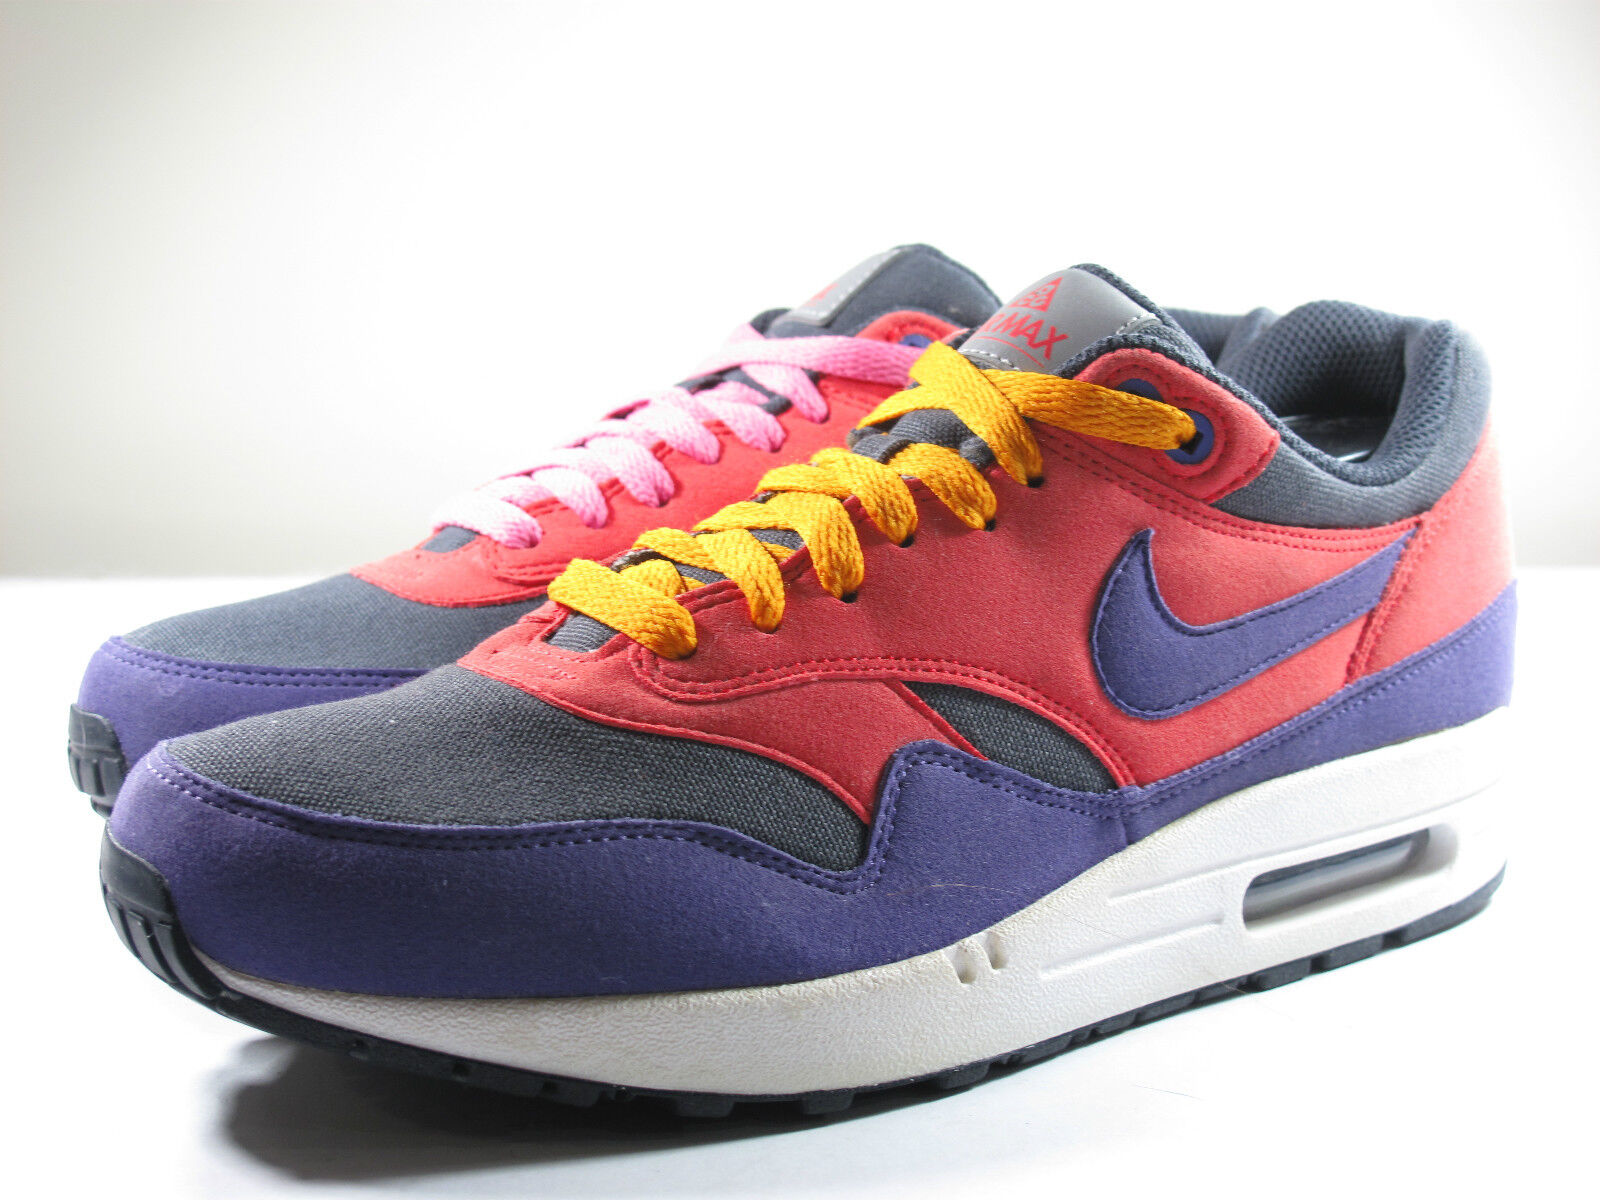 DS NIKE 2010 ATMOS AIR MAX 1 ACG VARSITY PURPLE 9 ATMOS 2010 PATTA 90 180 95 FORCE TRAINER f2afb2